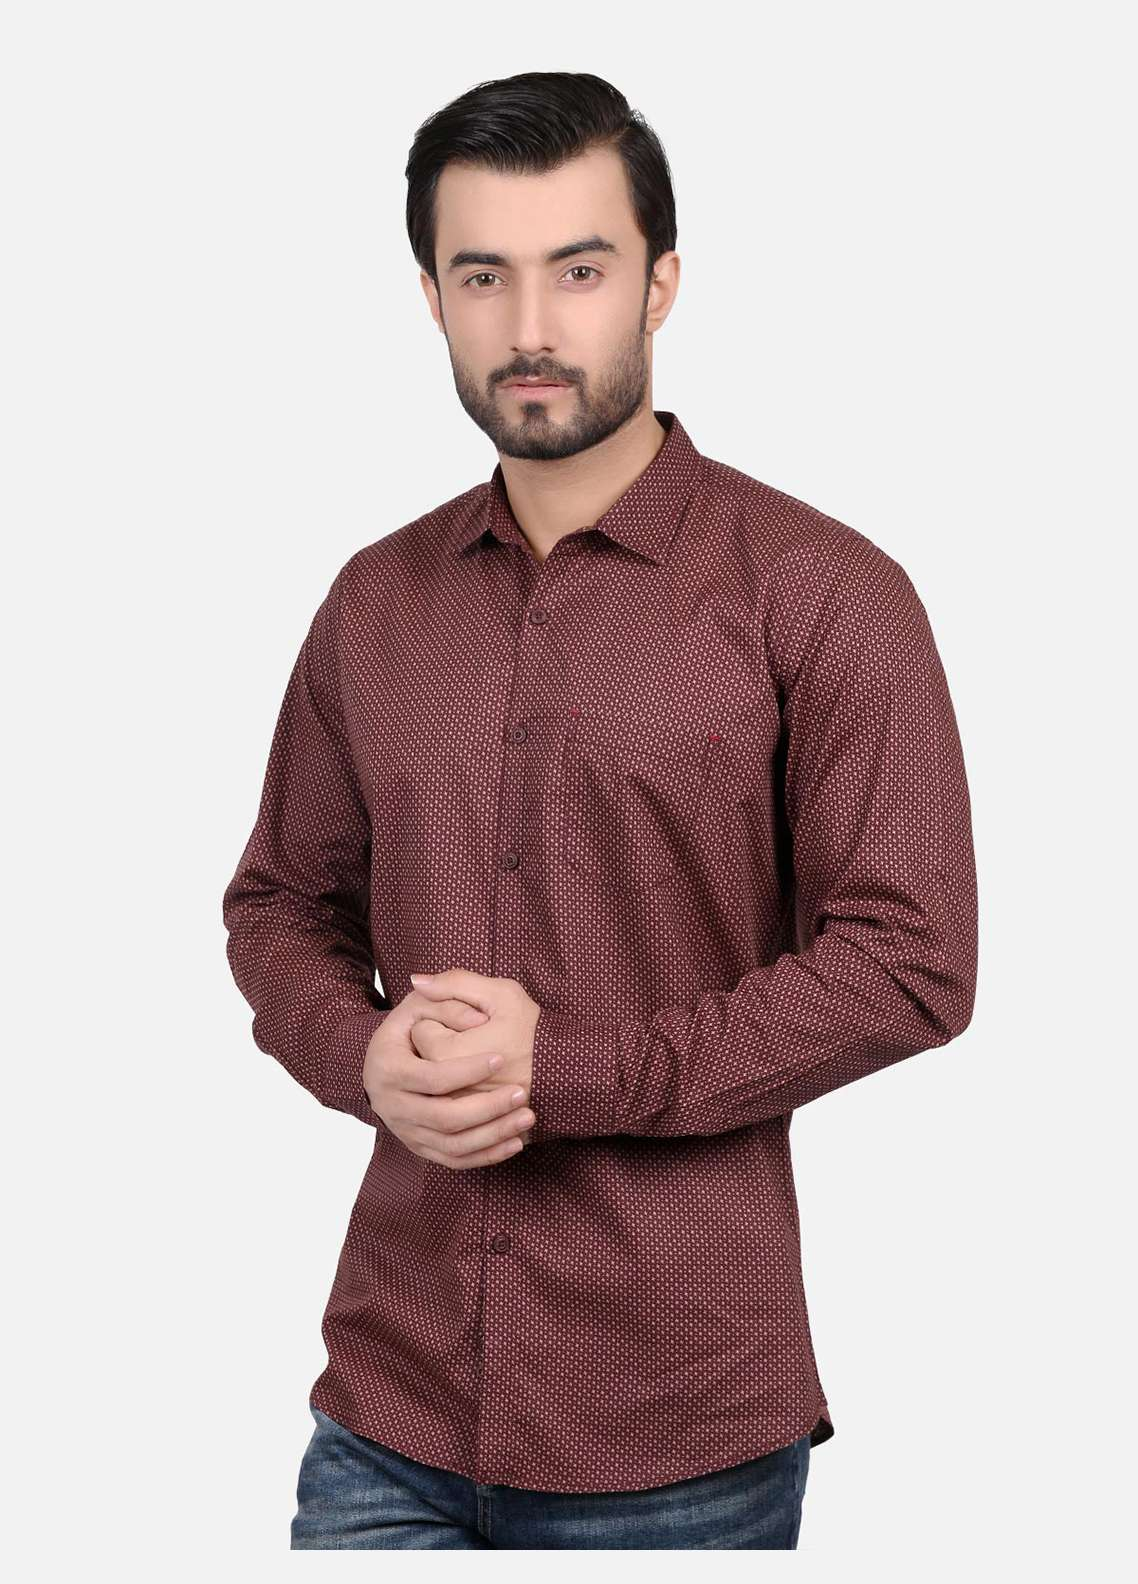 Furor  Casual Shirts for Men - Brown FRM18CS 31153